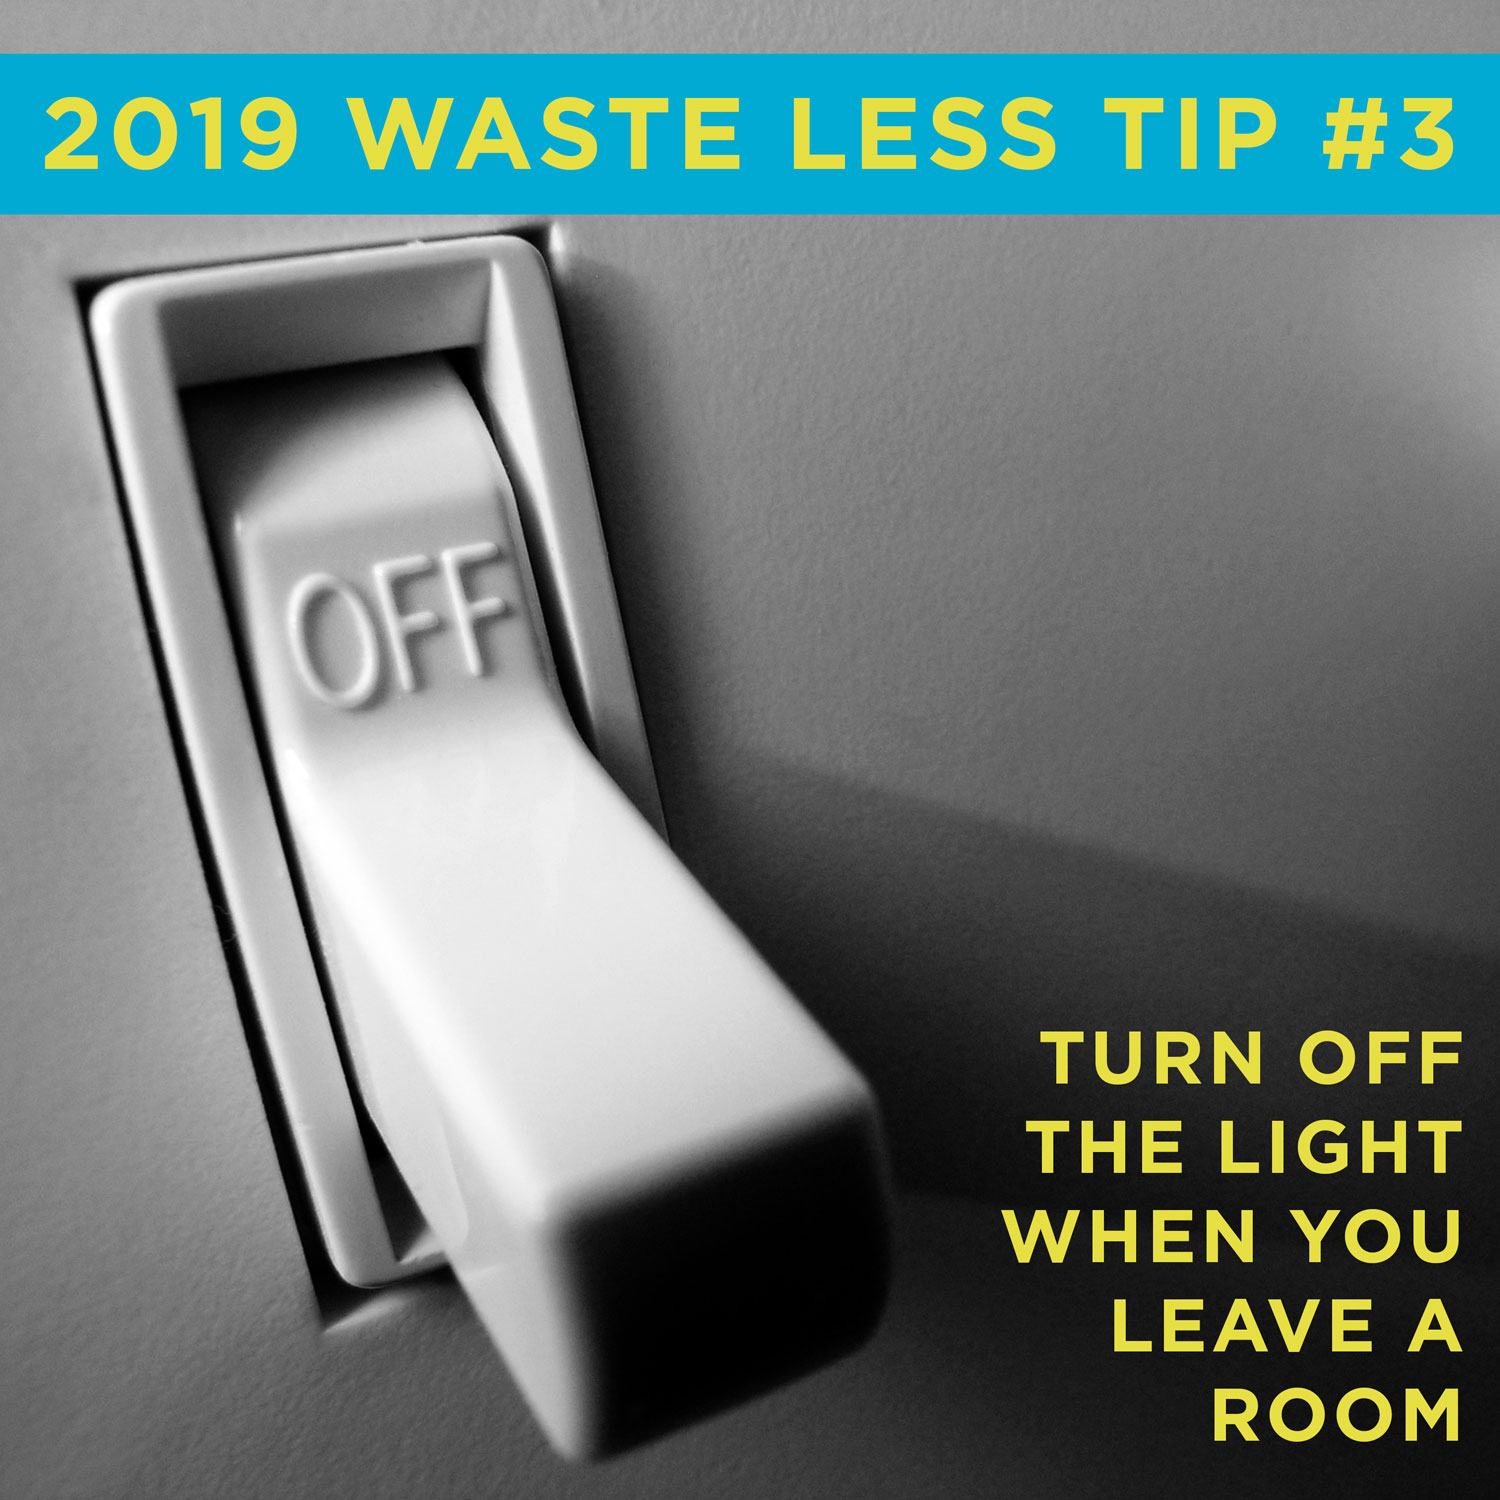 Environmentally Friendly tip #3 Turn off the light